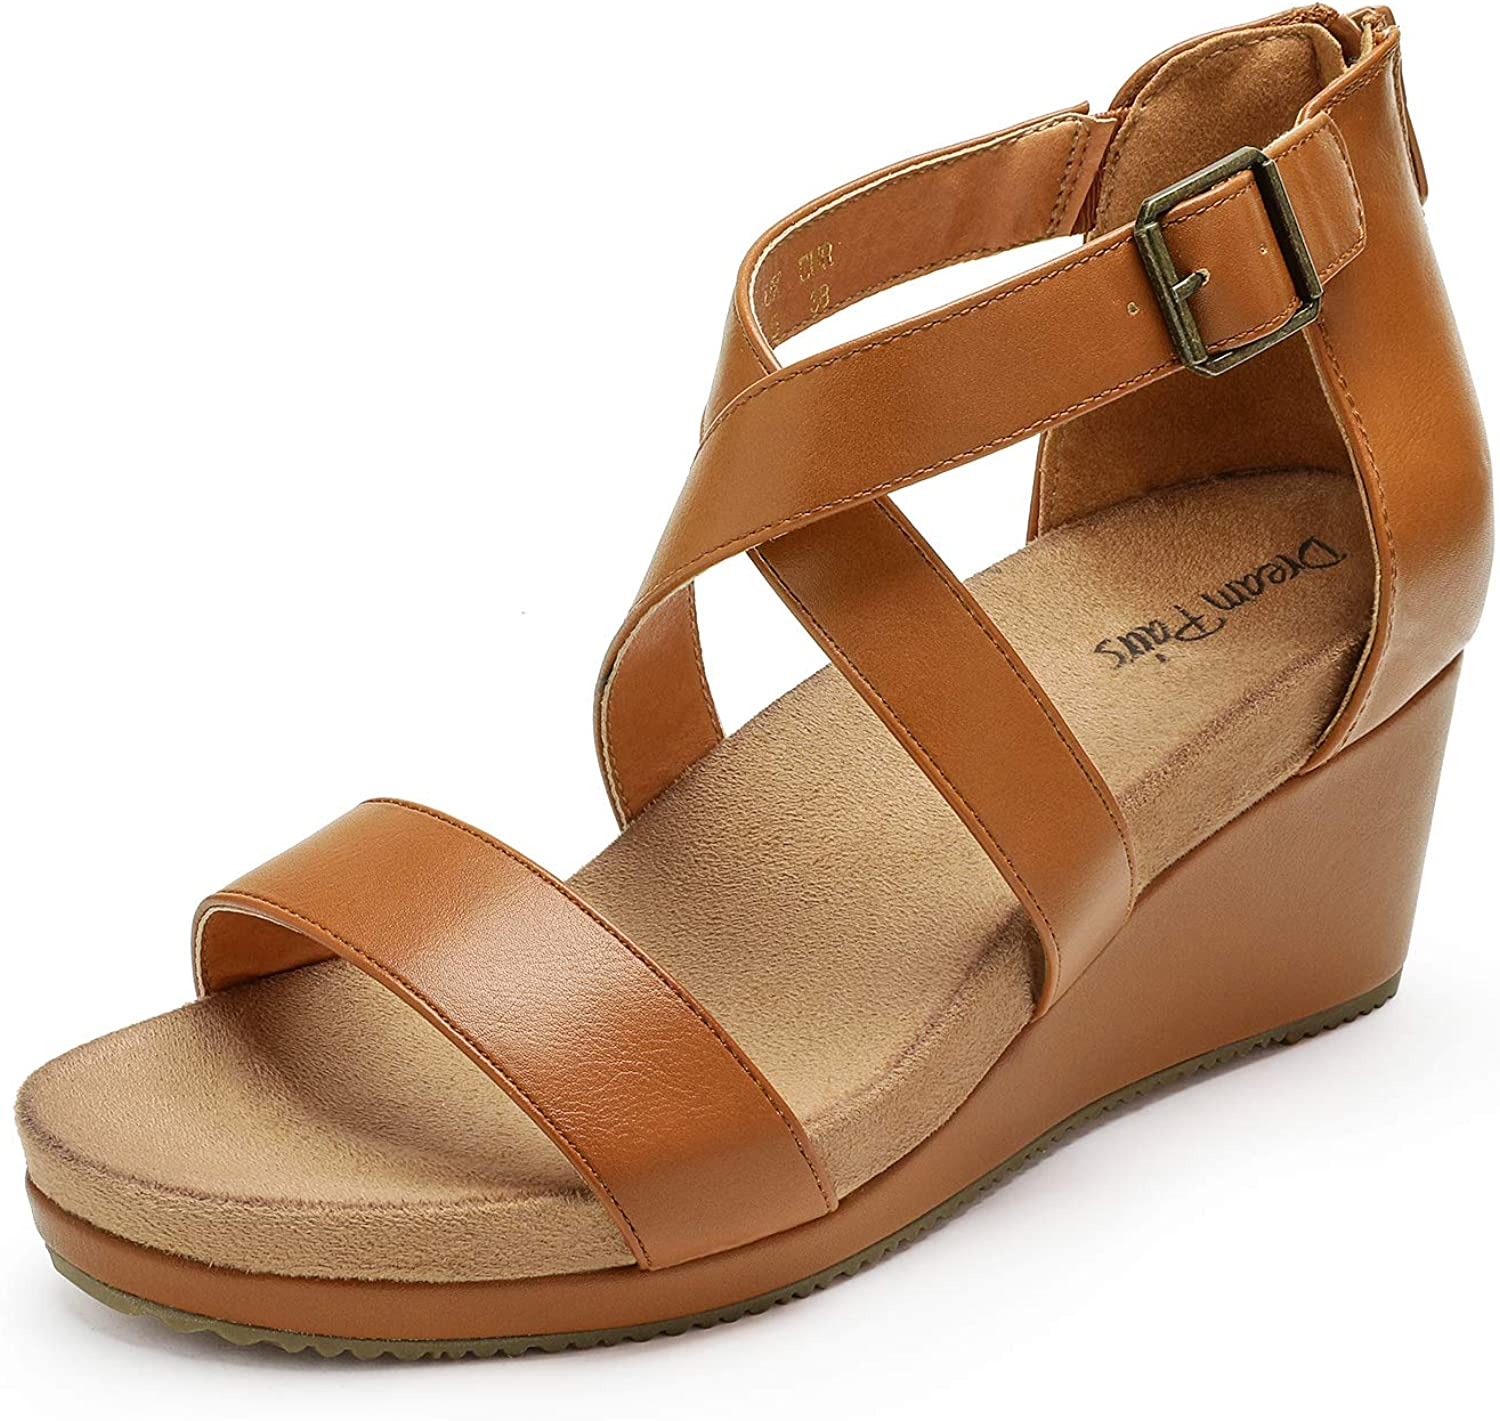 DREAM PAIRS Women's Open Toe Buckle Summer Super OFFer sale period limited Platform Strap Ankle